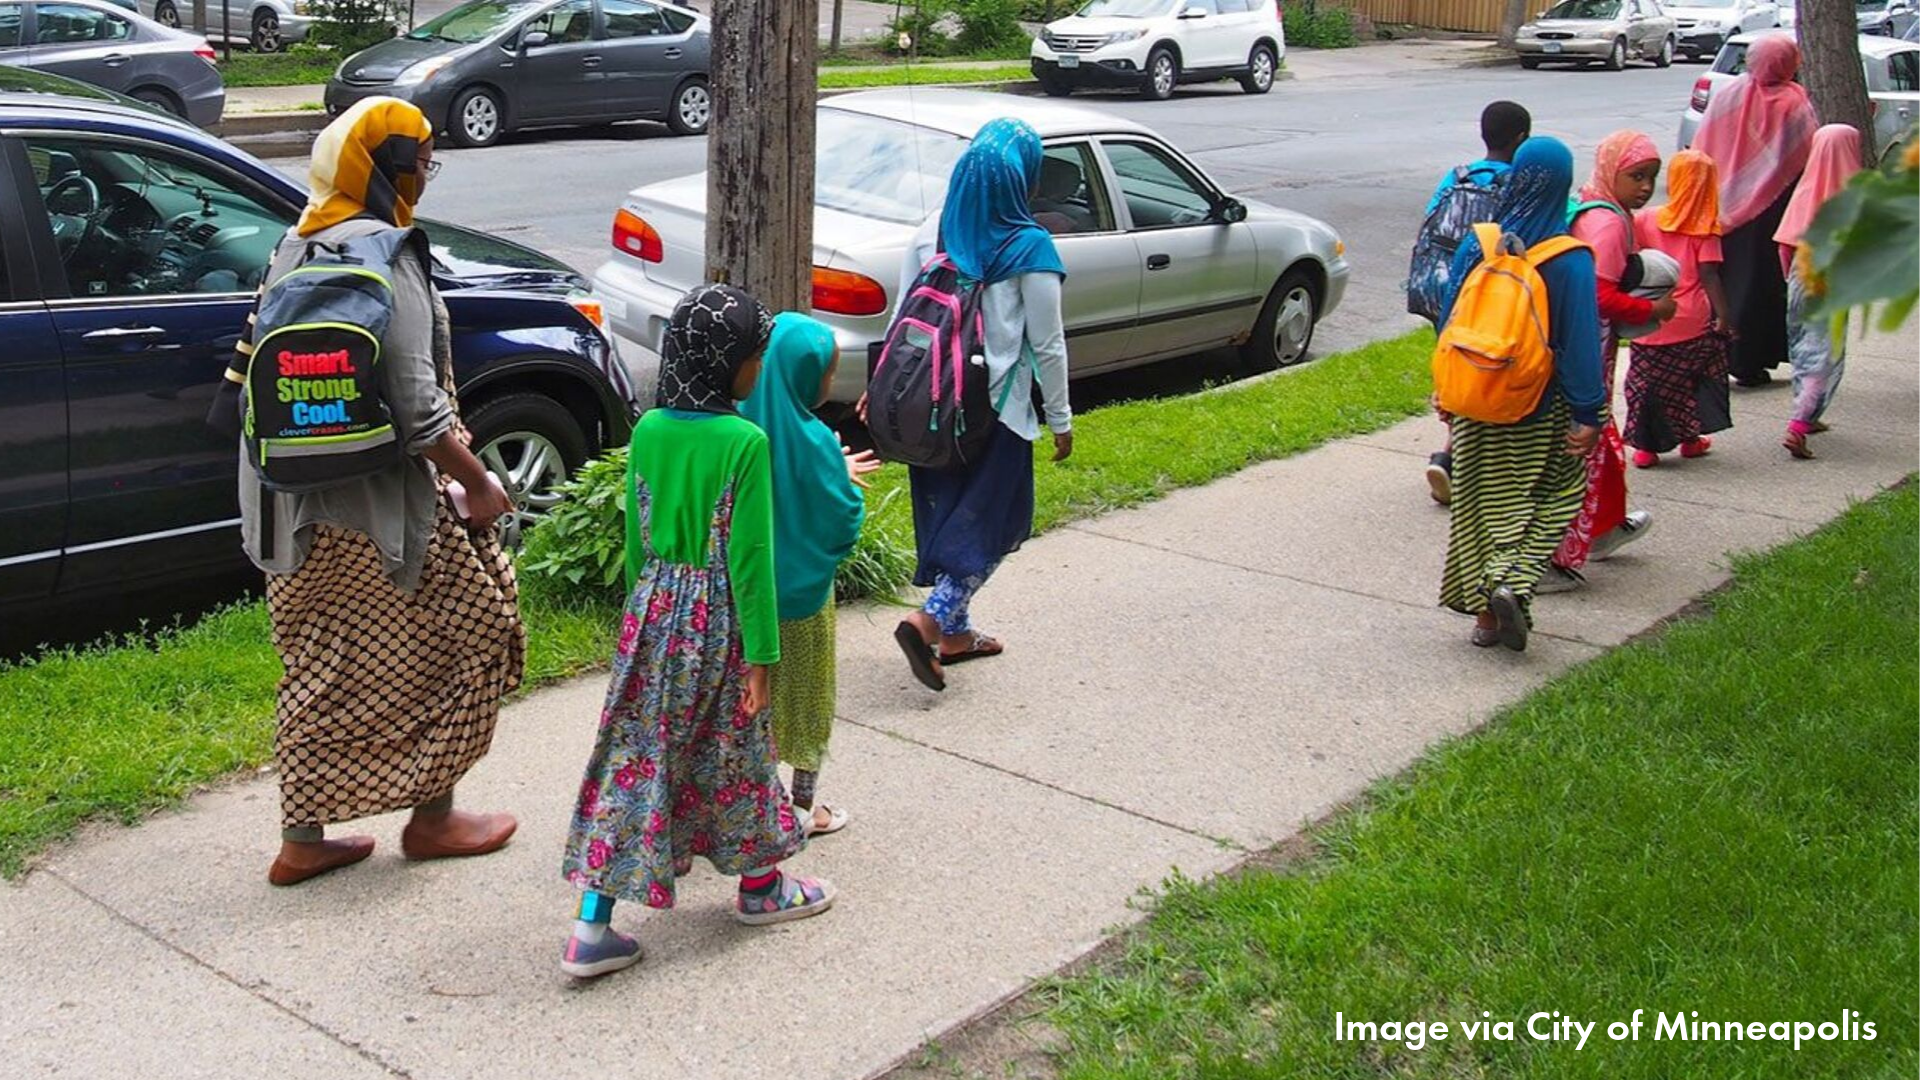 East African adults and children walking on a sidewalk